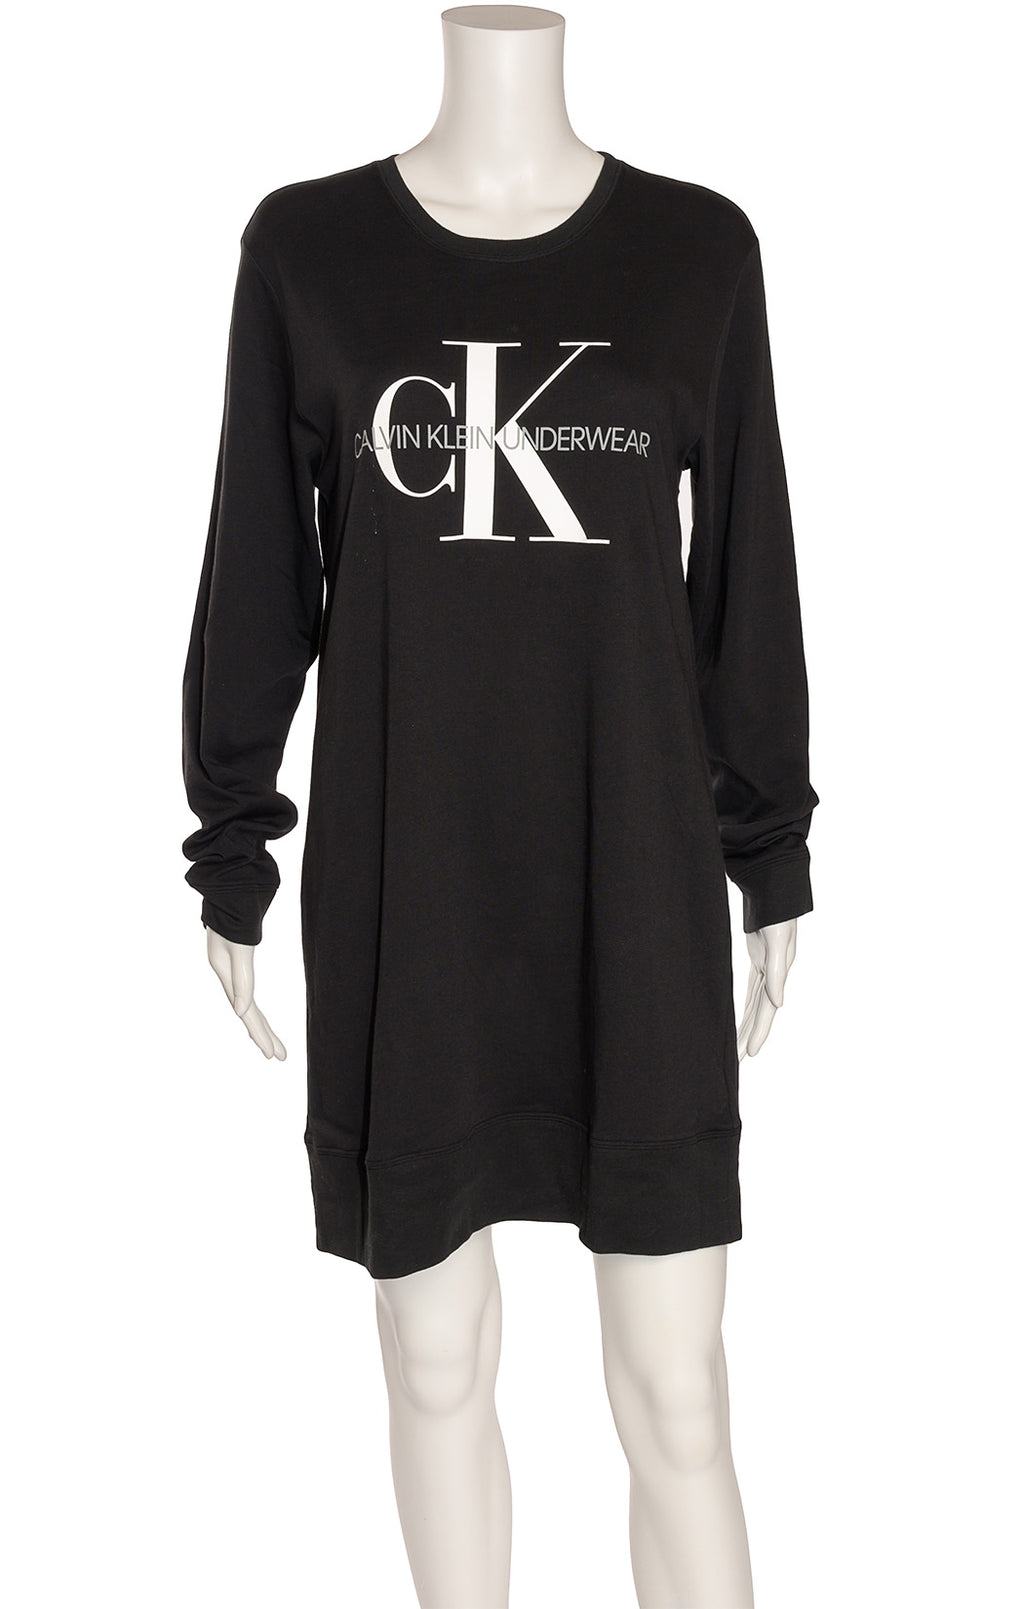 Front view of CALVIN KLEIN with tags Nightshirt Size: Medium